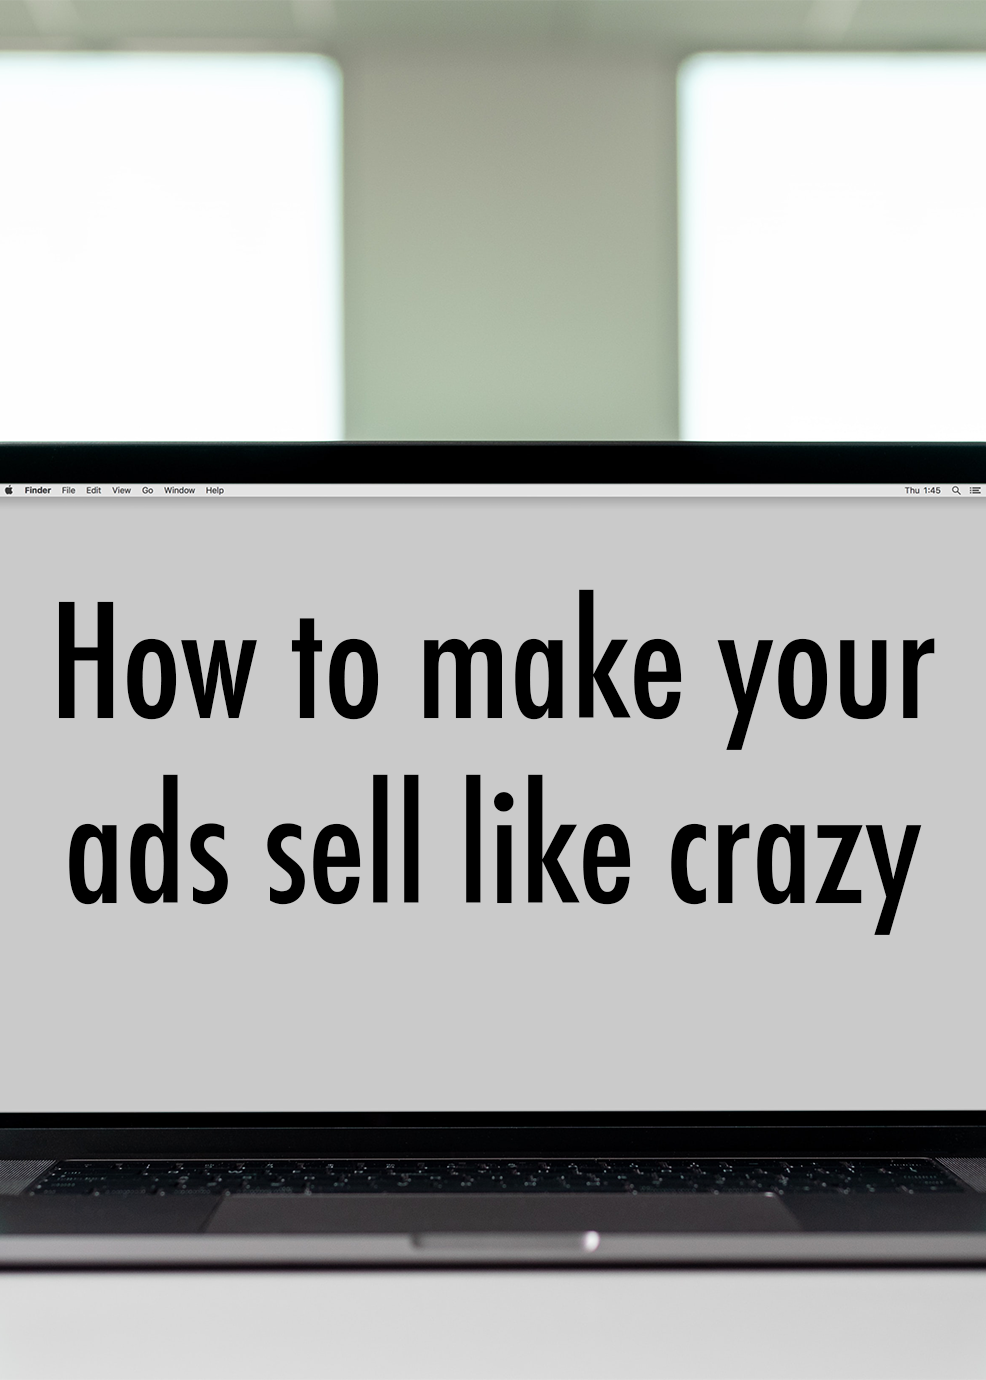 How to Make Your Ads Sell Like Crazy